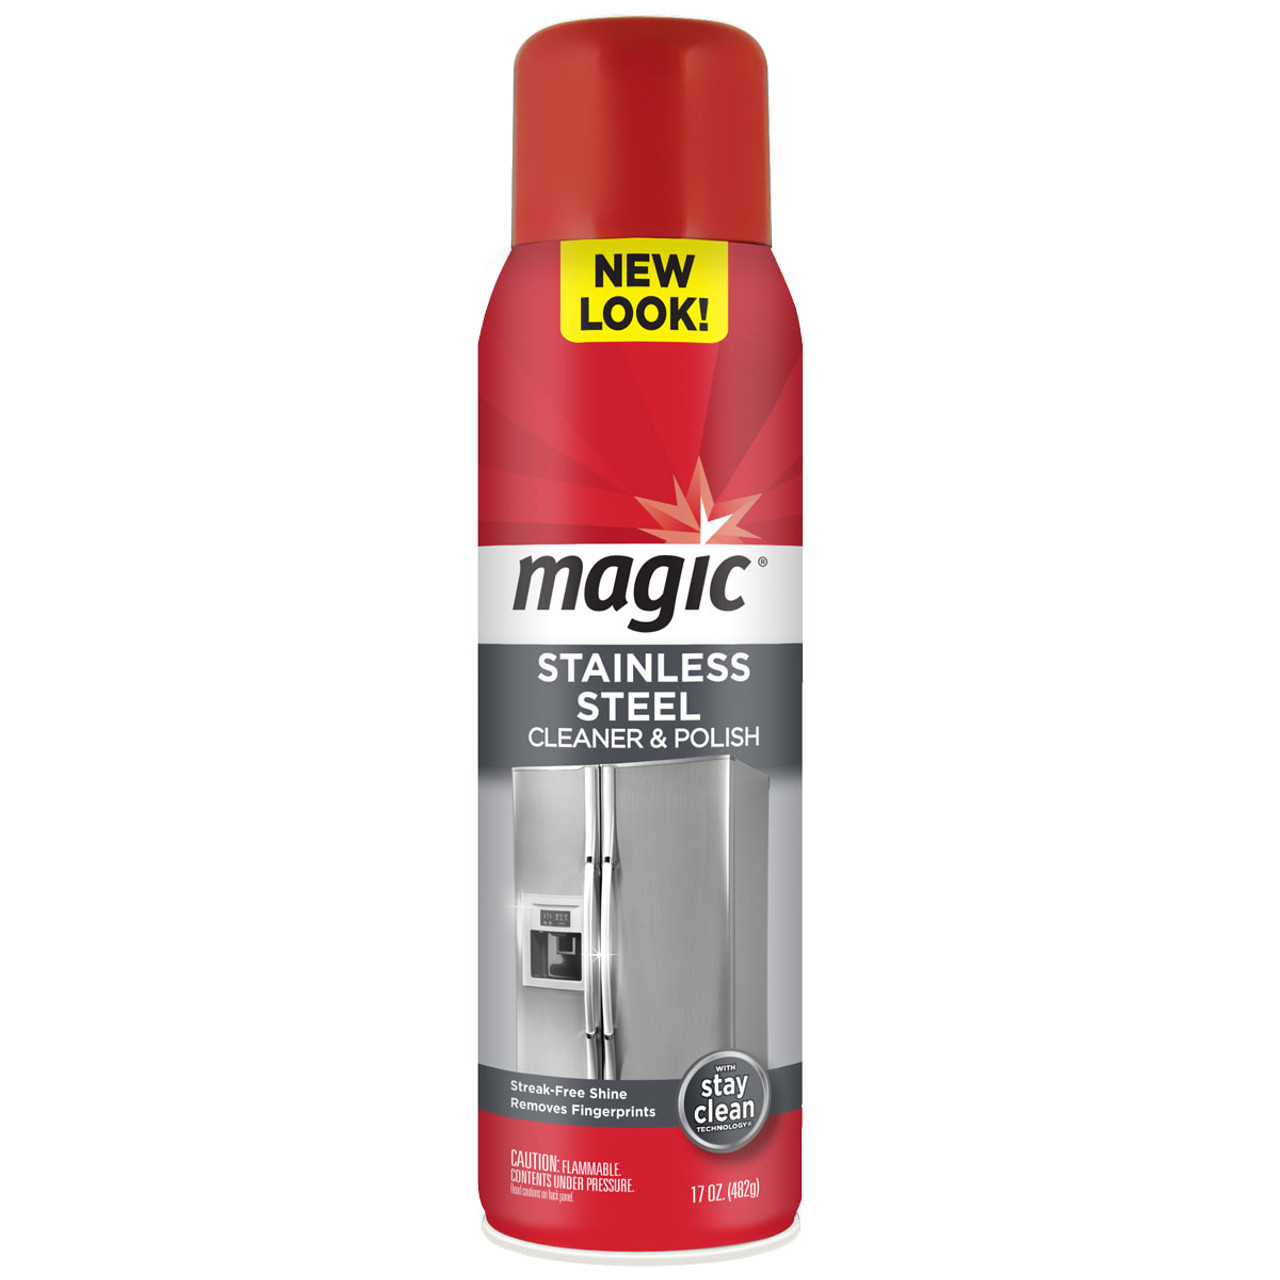 Magic - Stainless Steel Cleaner & Polish (17oz. Aerosol) - Front of can